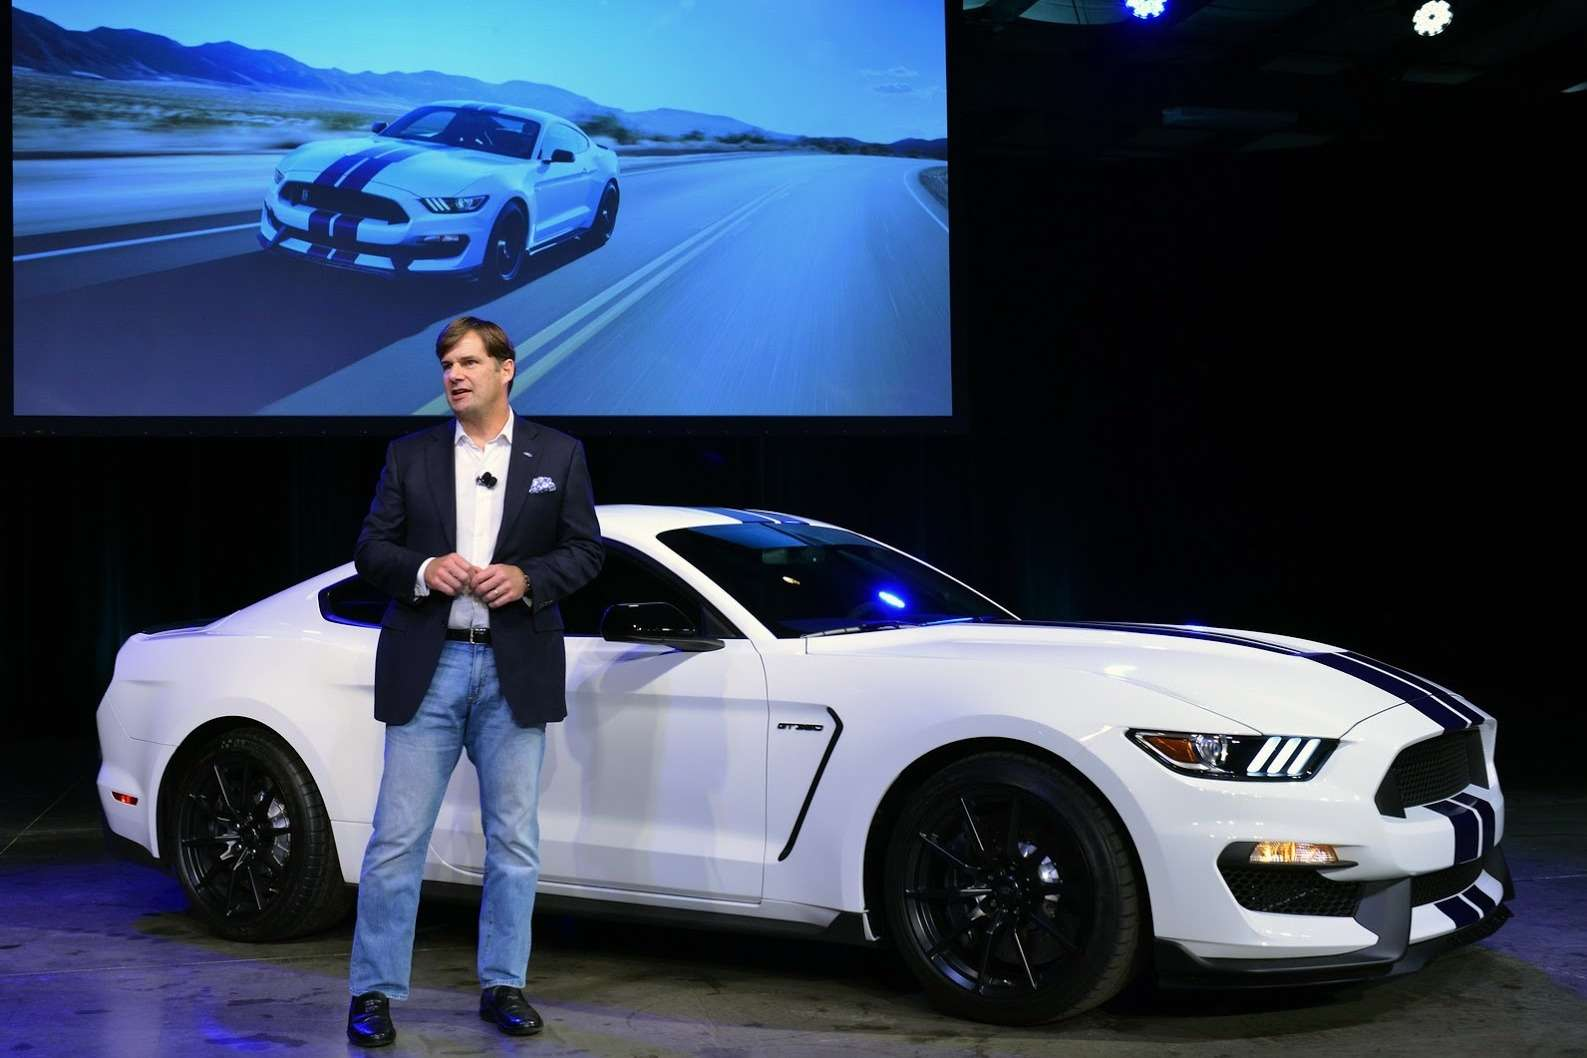 New-Ford-Mustang-Shelby-GT350-06